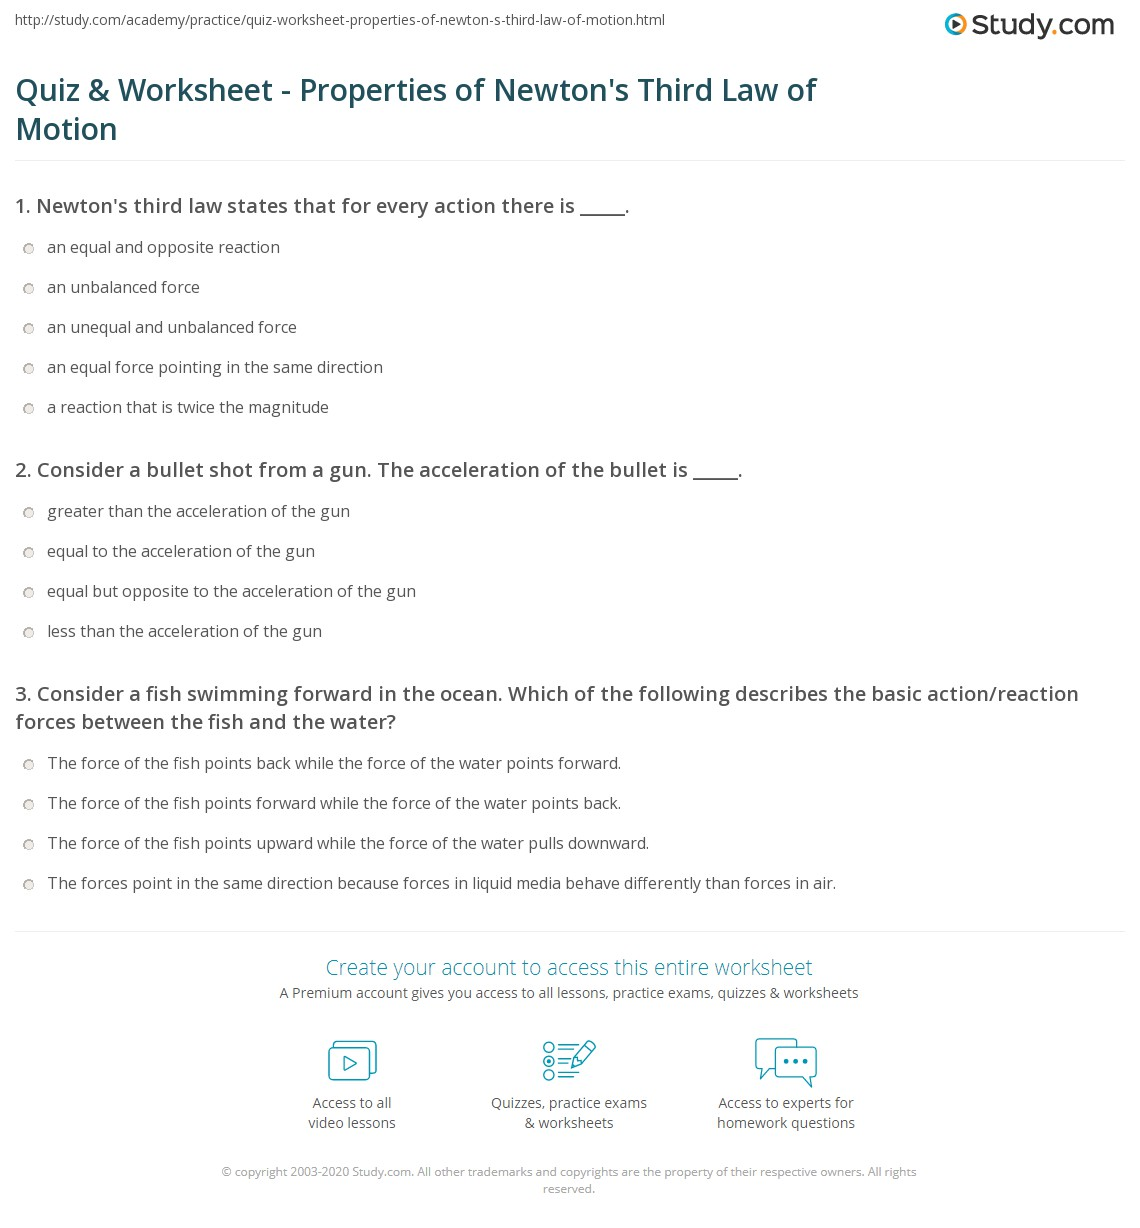 Quiz Worksheet Properties Of Newton 39 S Third Law Of